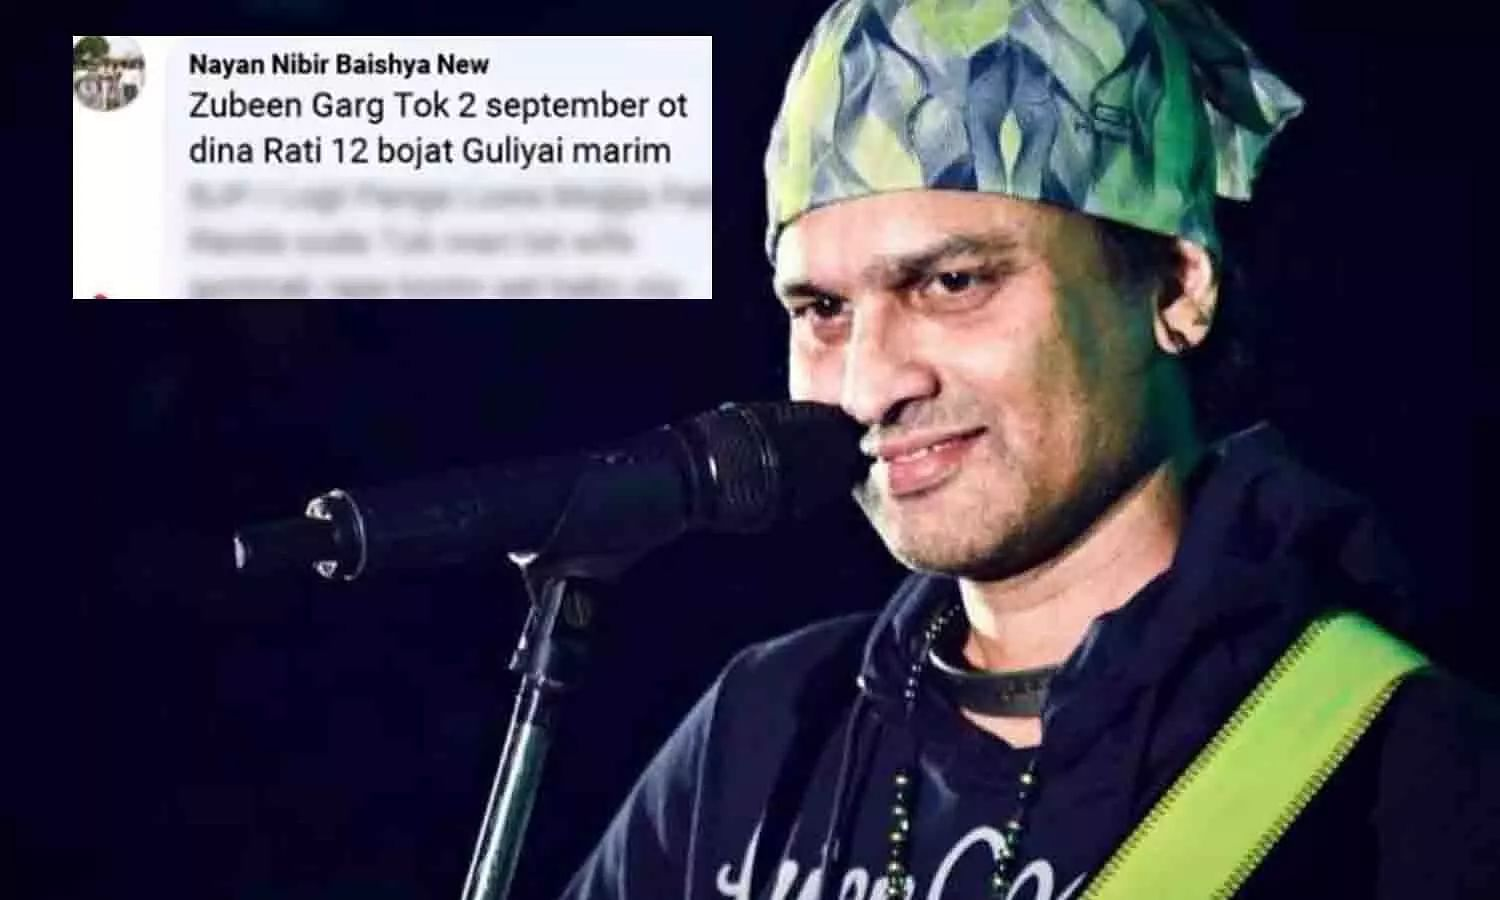 Assam youth arrested for objectionable Facebook posts against Zubeen, Garima